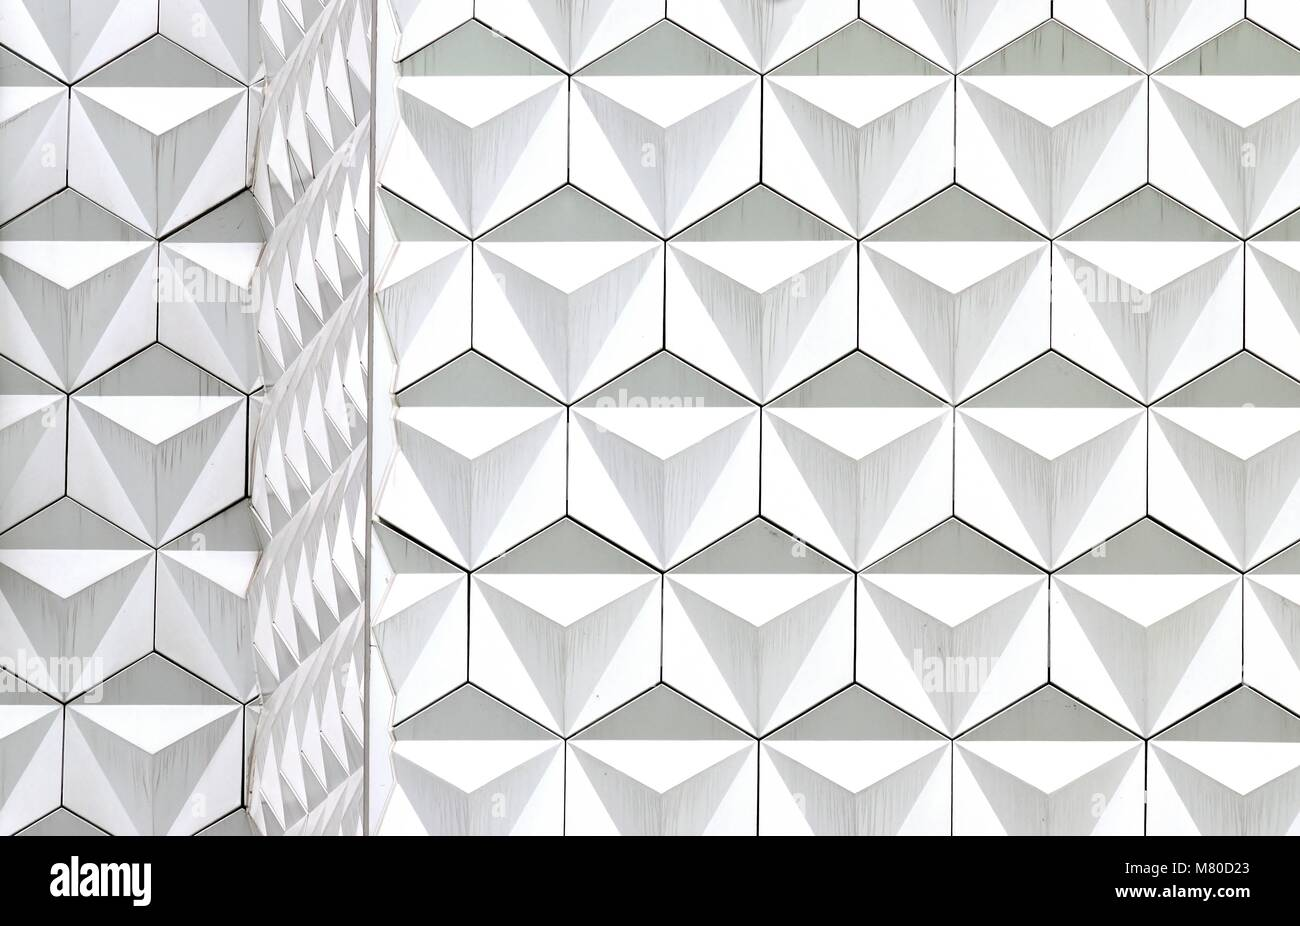 Front view of abstract geometric white  triangle and hexagon repeat patterns as seamless background - Stock Image